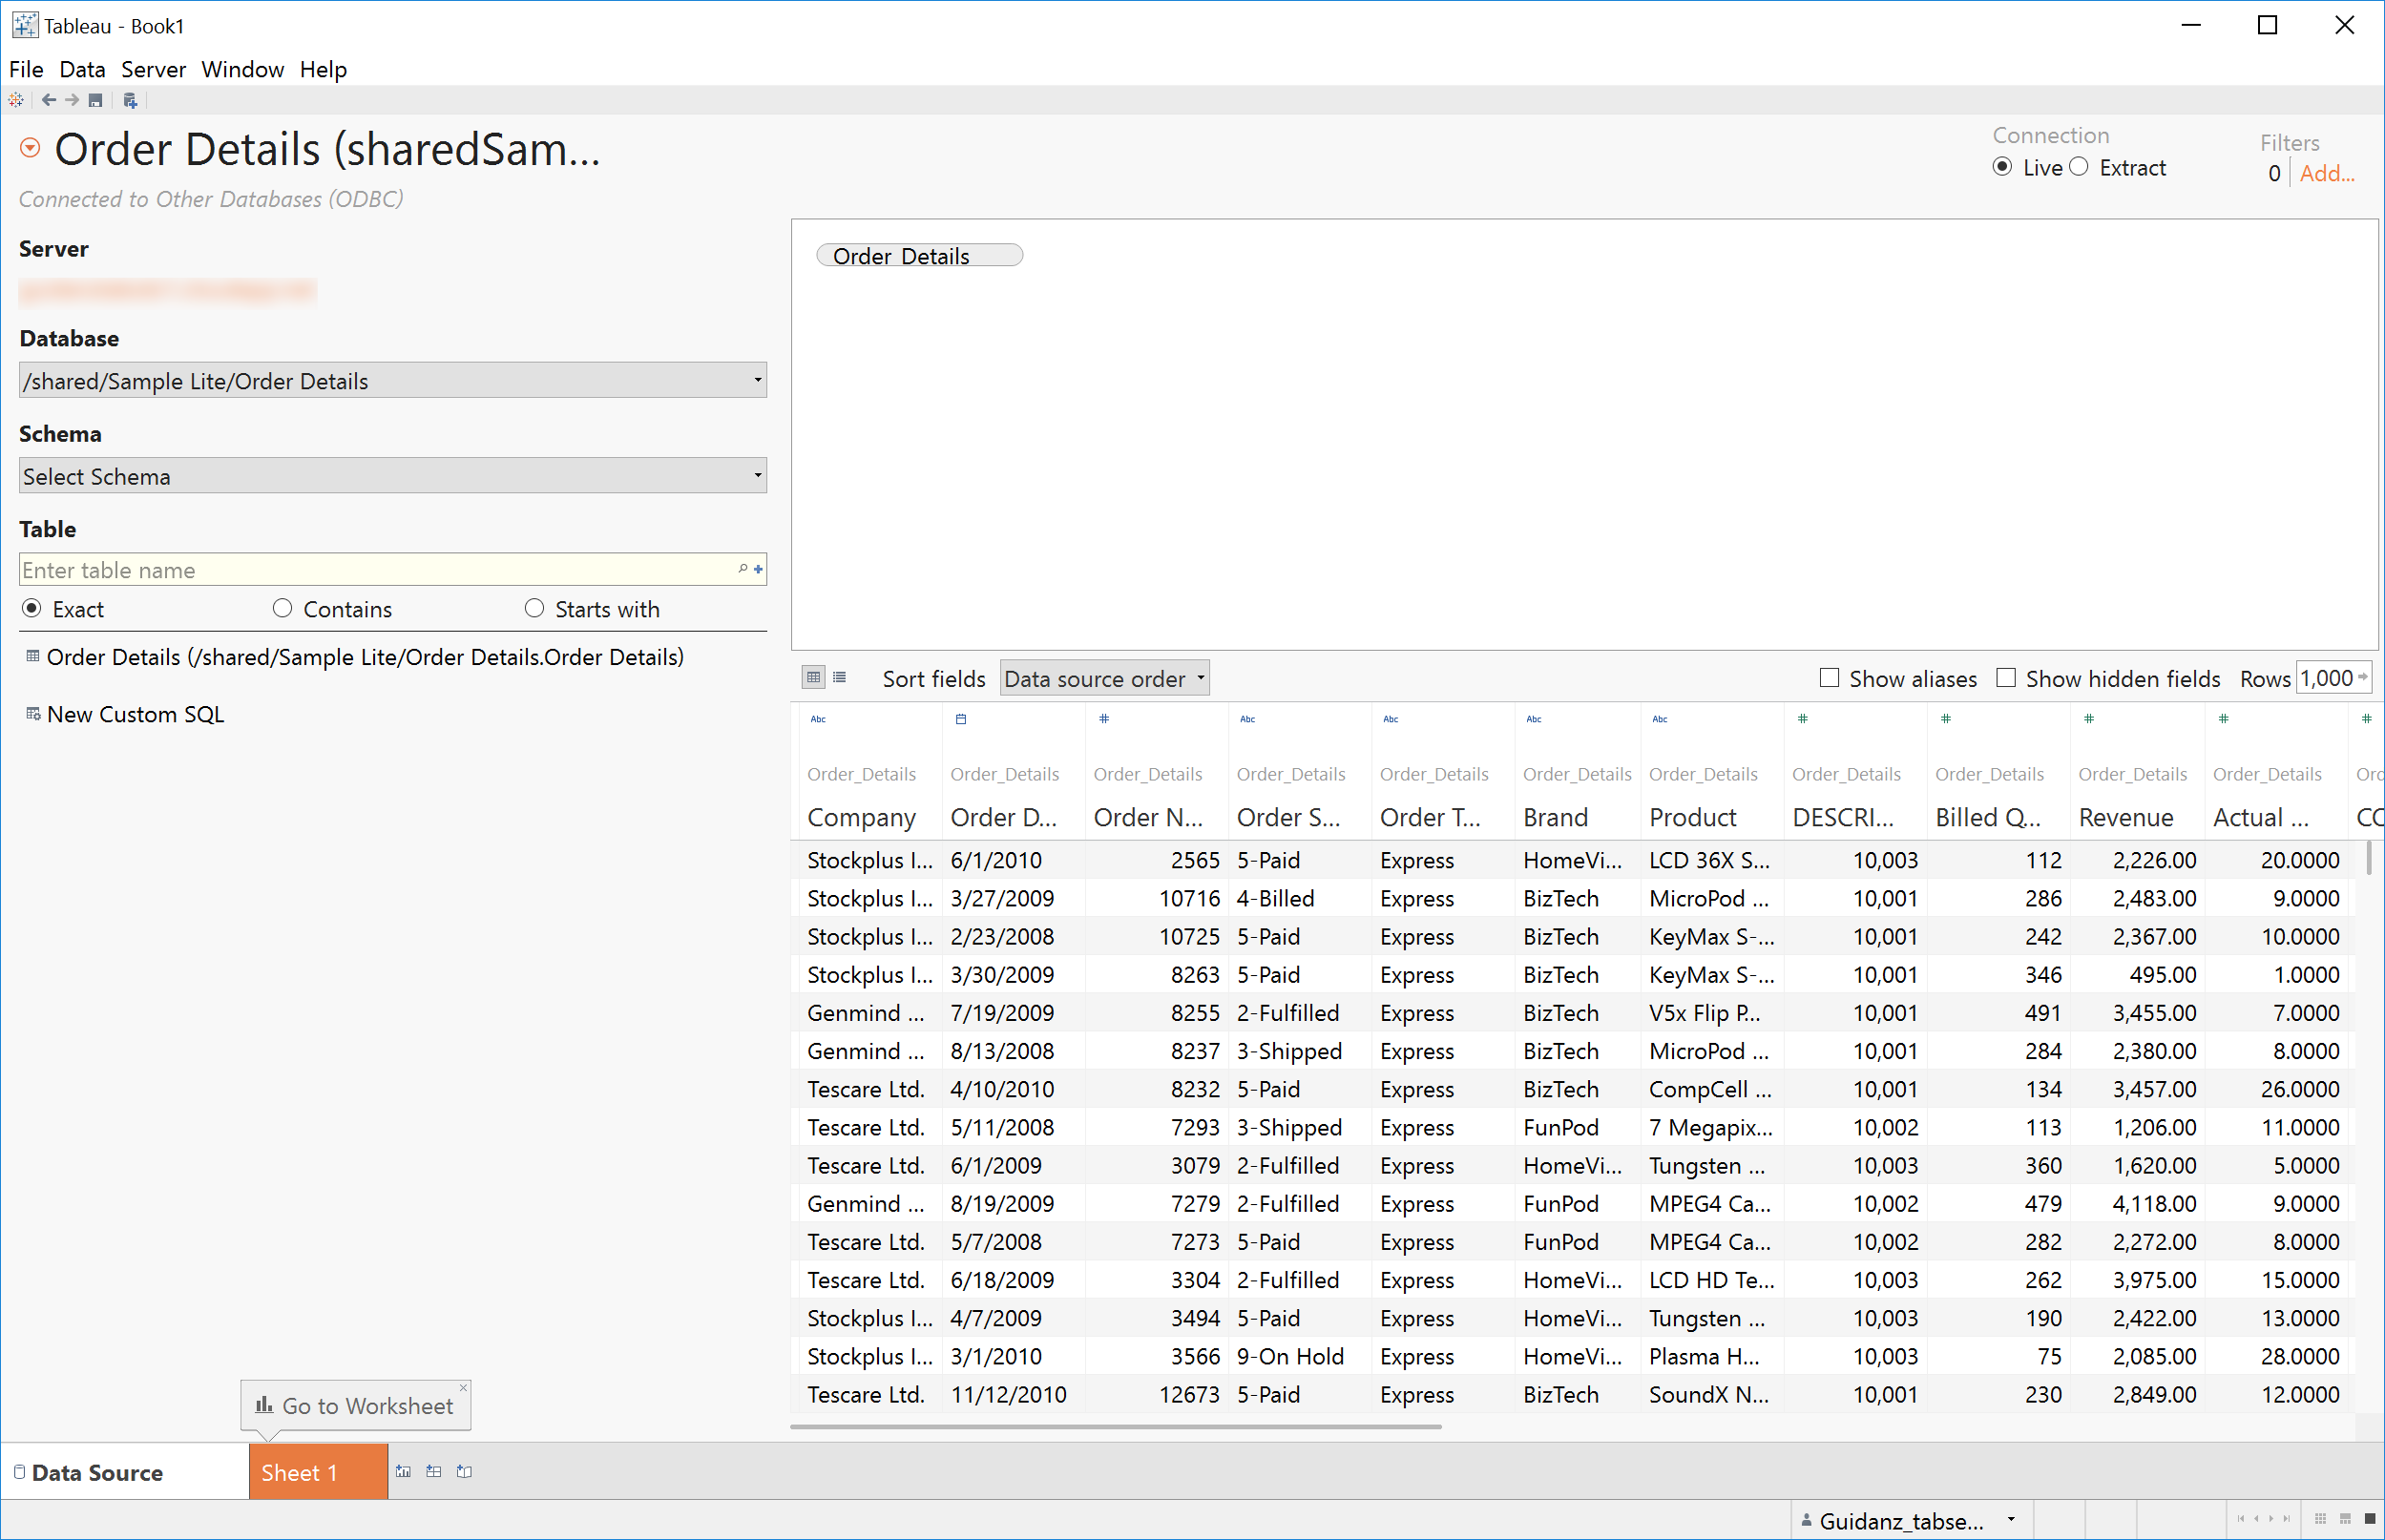 BI connector - Obiee reports appear as table in Tableau